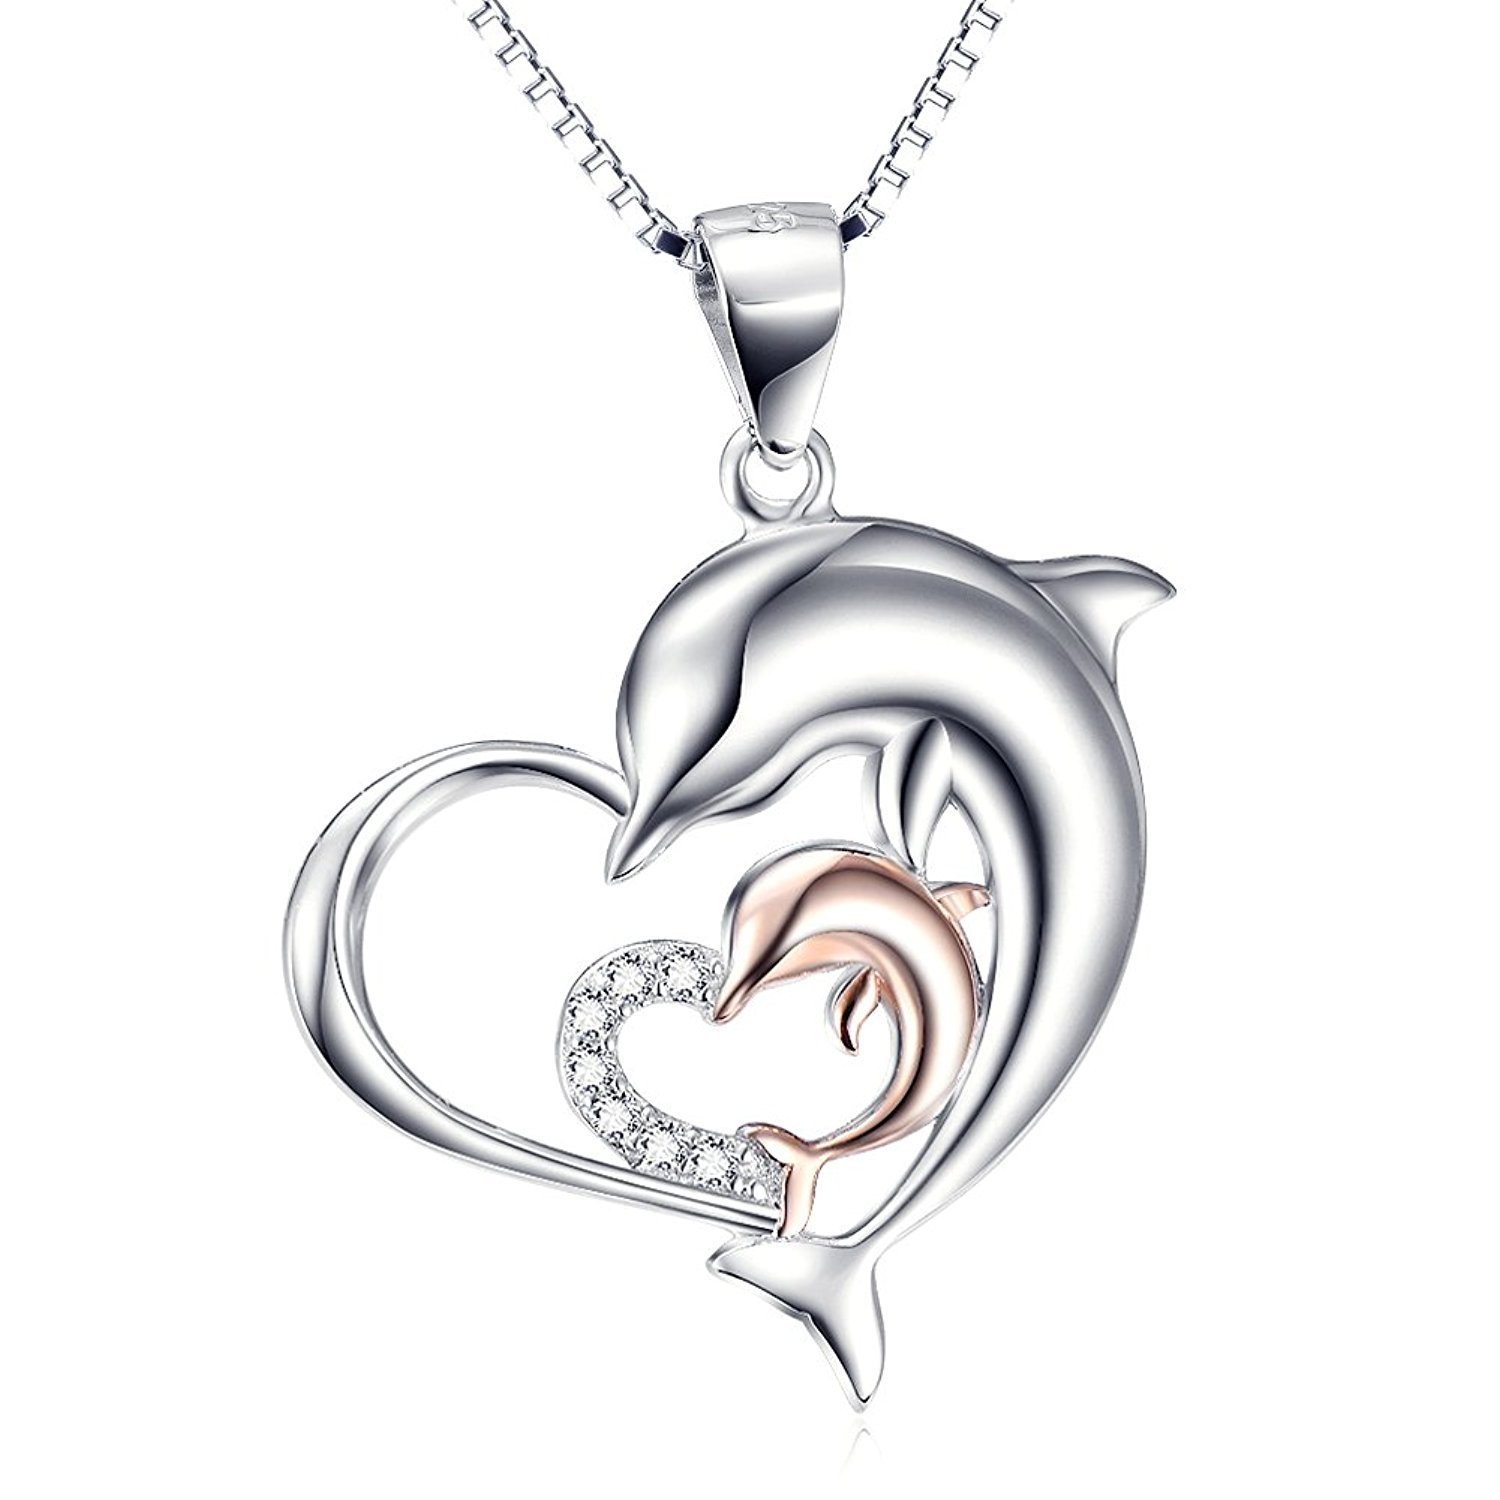 BGTY Sterling Silver Rose Gold Double Dolphin Love Heart Pendant Necklace, Box Chain 18''